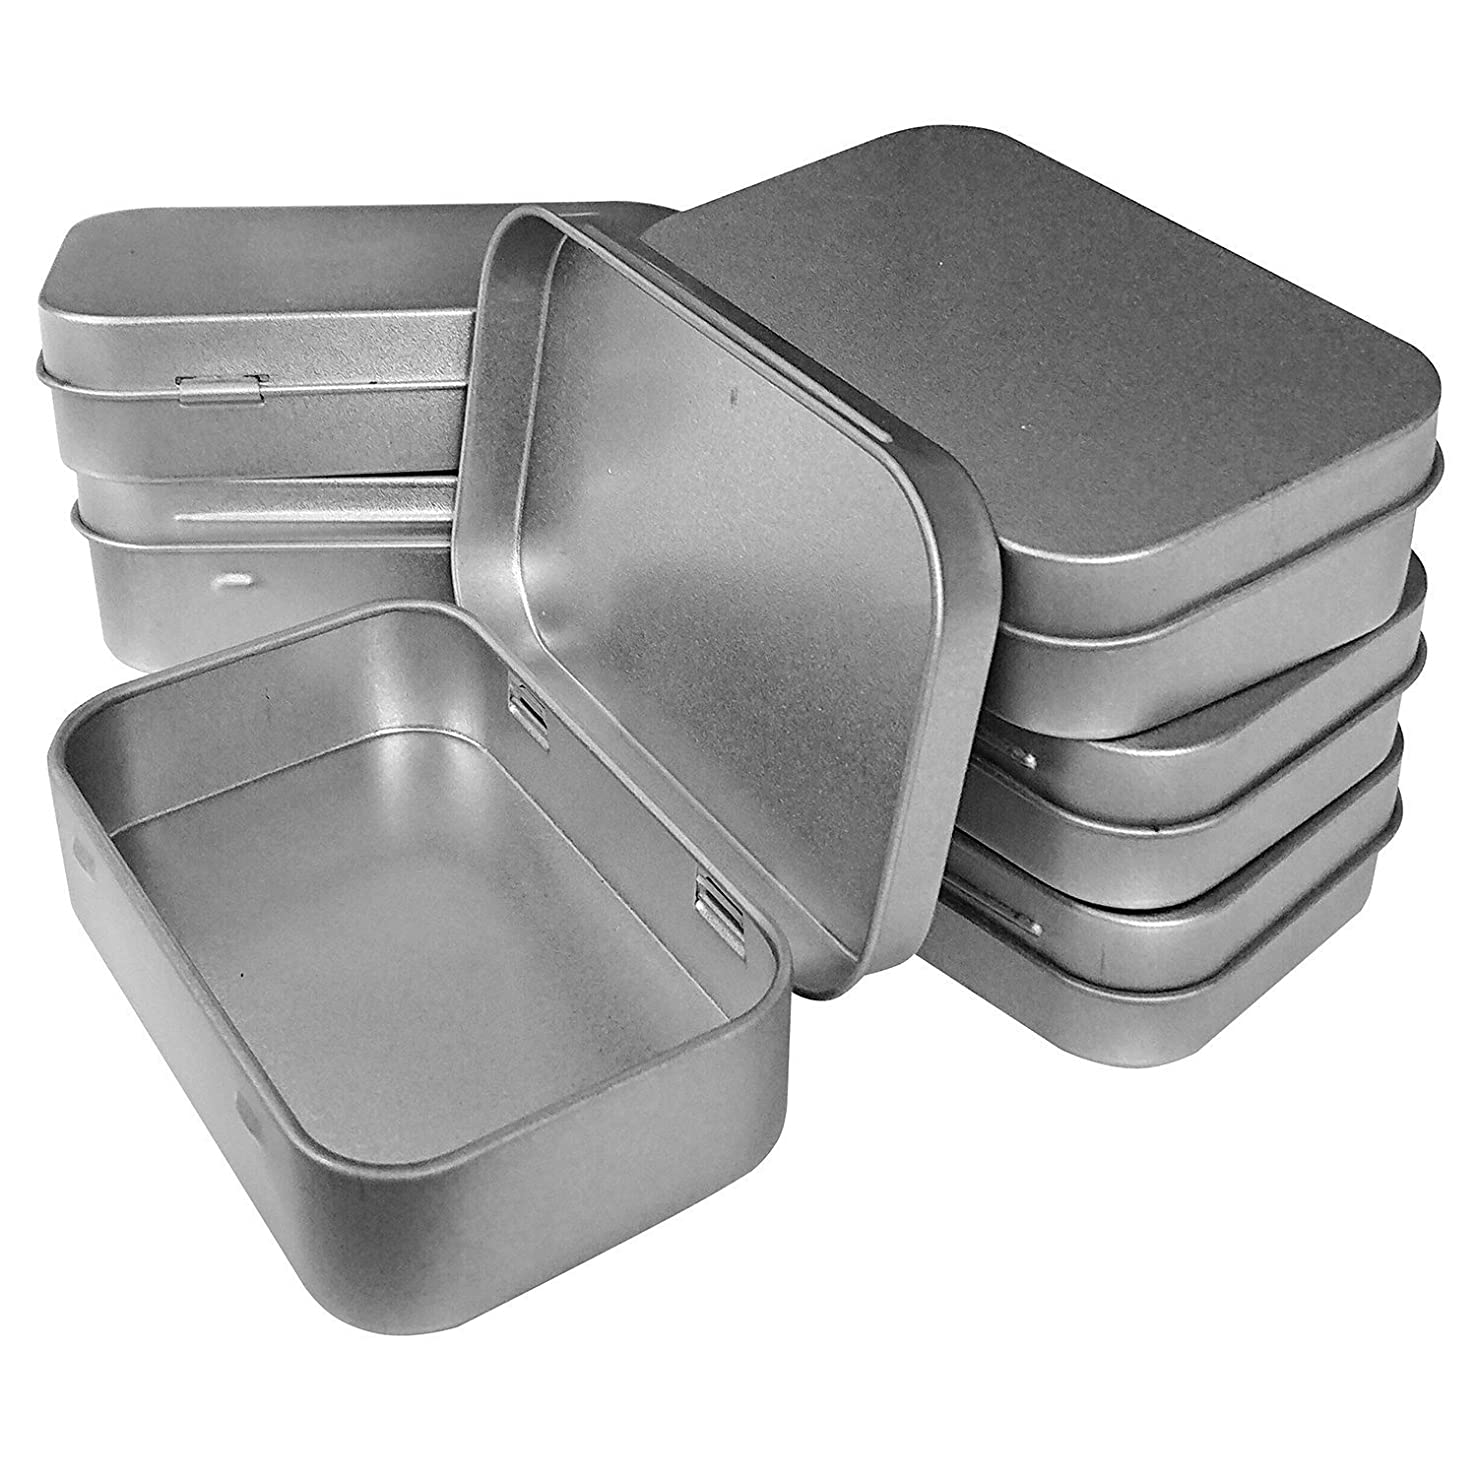 Hulless 3.7x2.3x0.8 in Metal Hinged Tins Box Containers Mini Portable Small Storage Containers Kit Tin Box Containers, Small Tins with Lids, Craft containers, Tin Empty Boxes, Home Storage 24pcs.